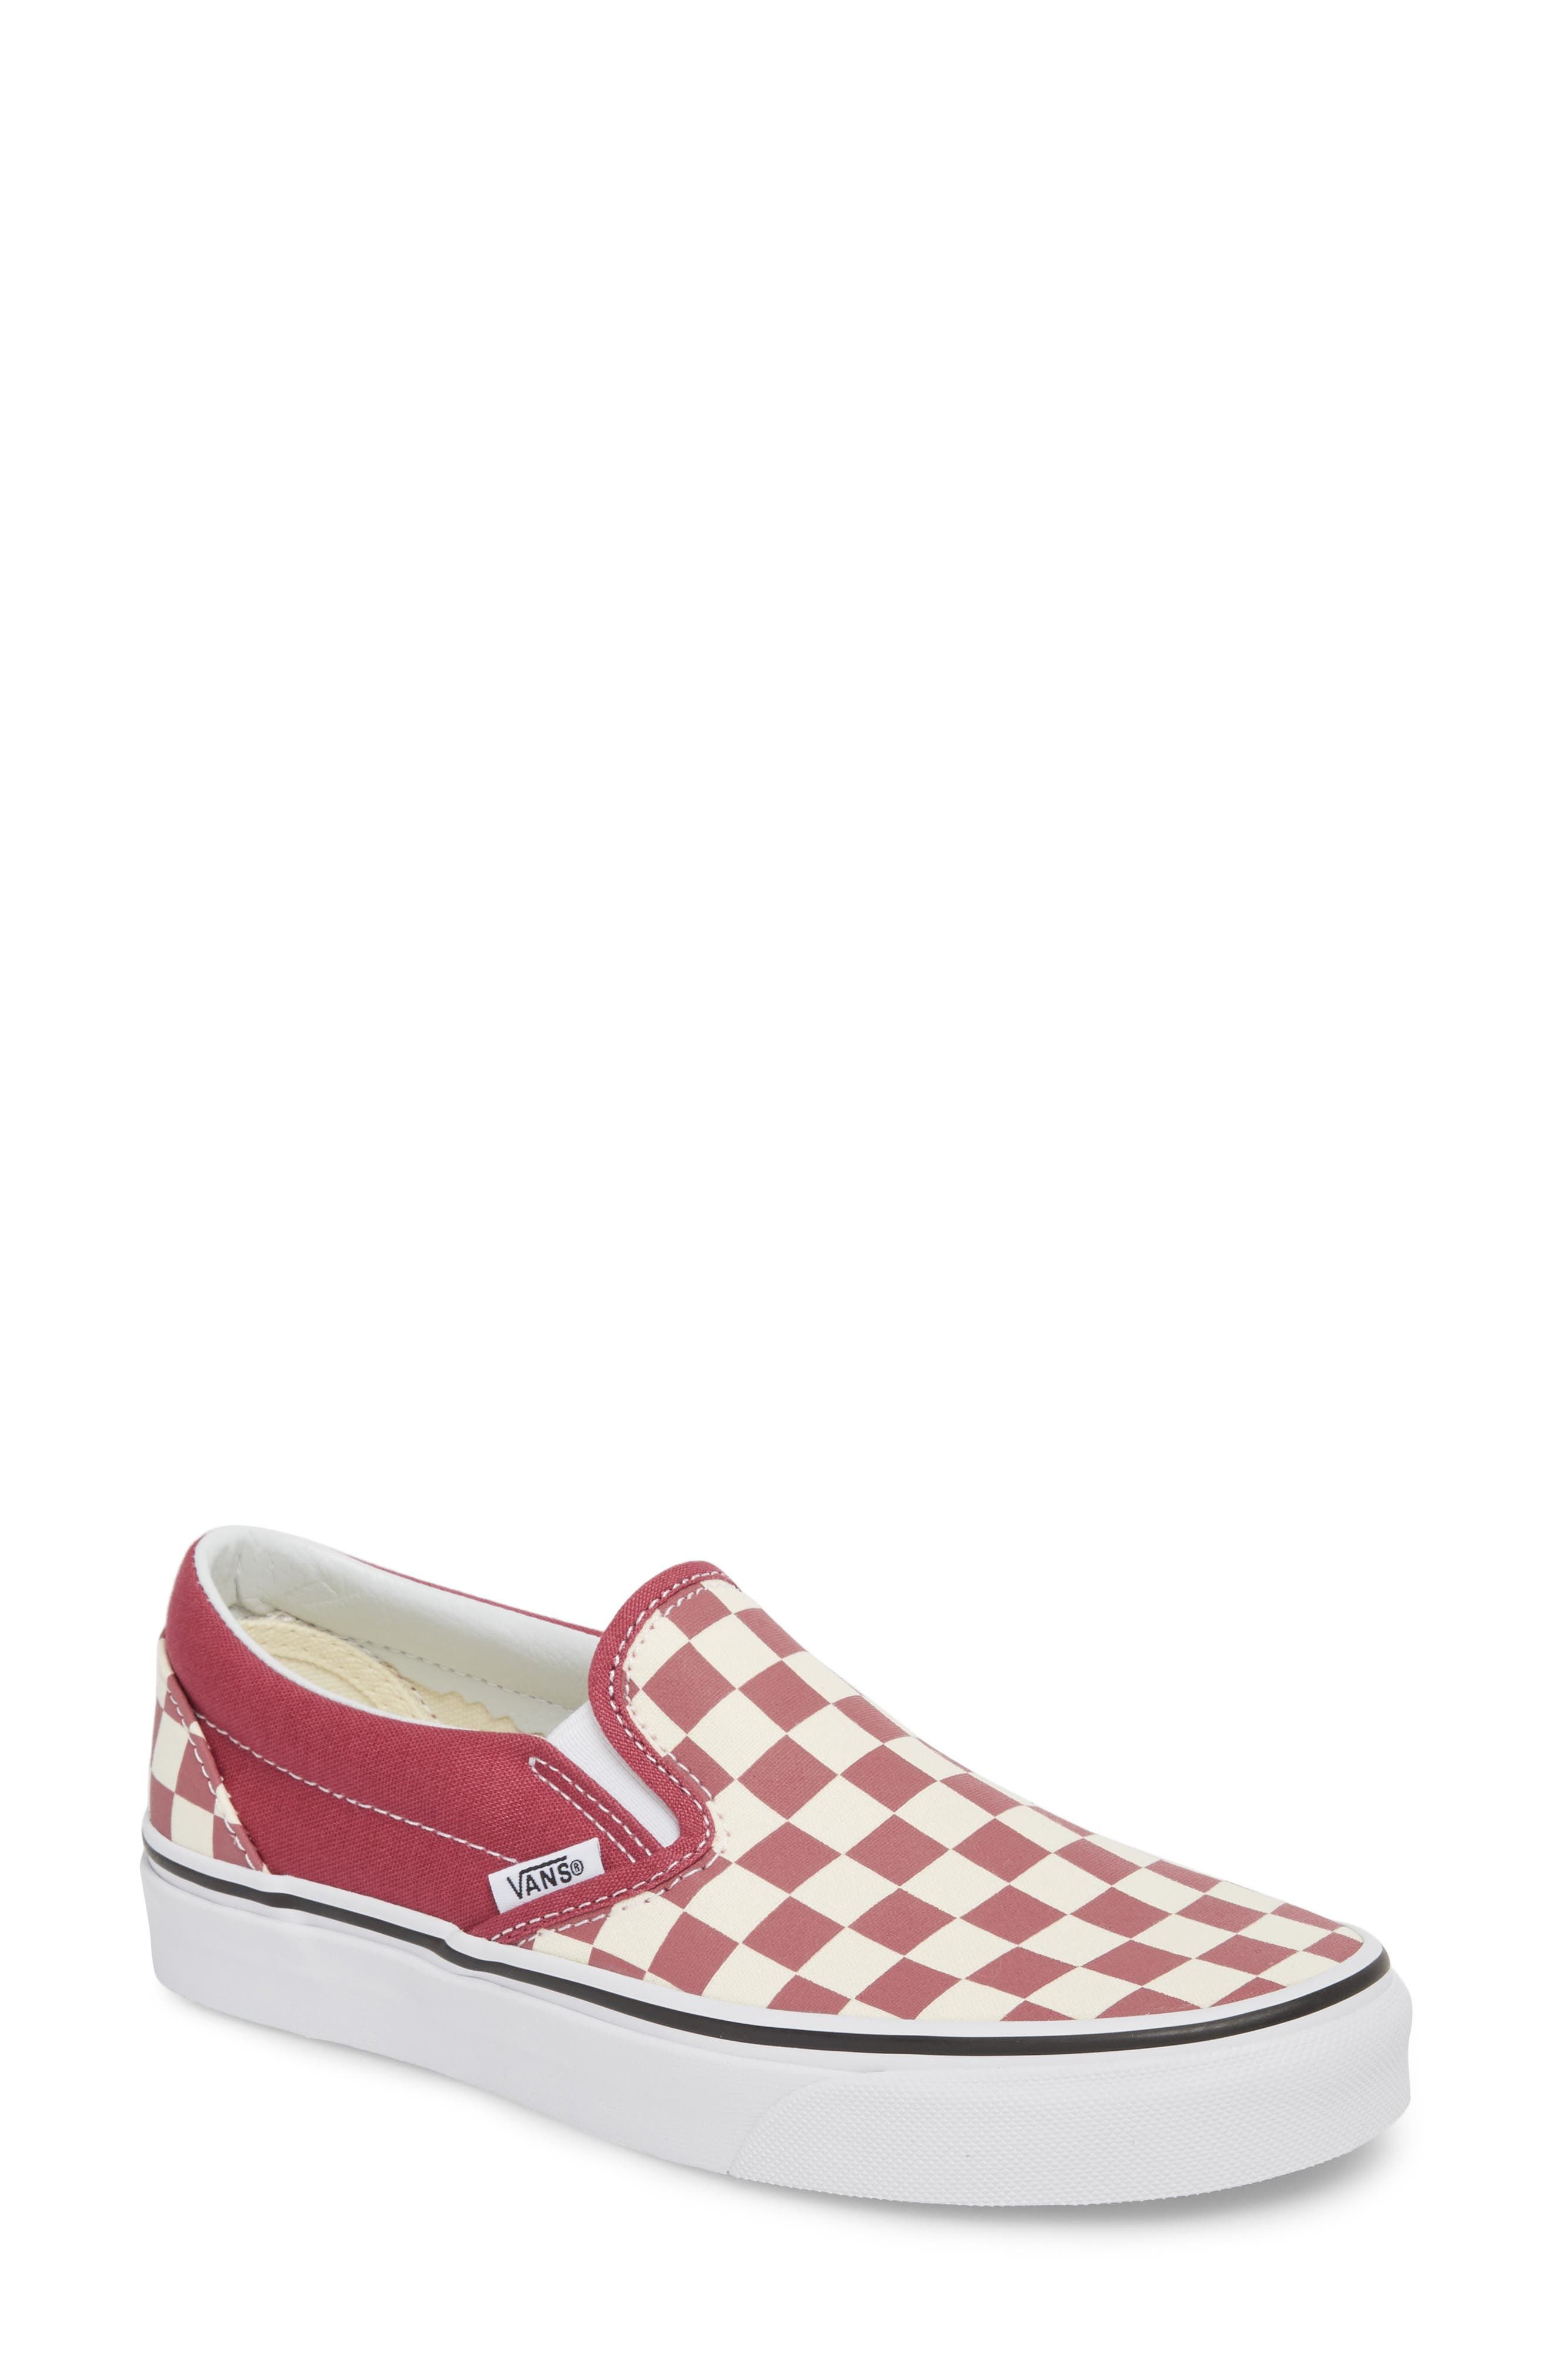 'Classic' Slip-On,                         Main,                         color, Dry Rose/ White